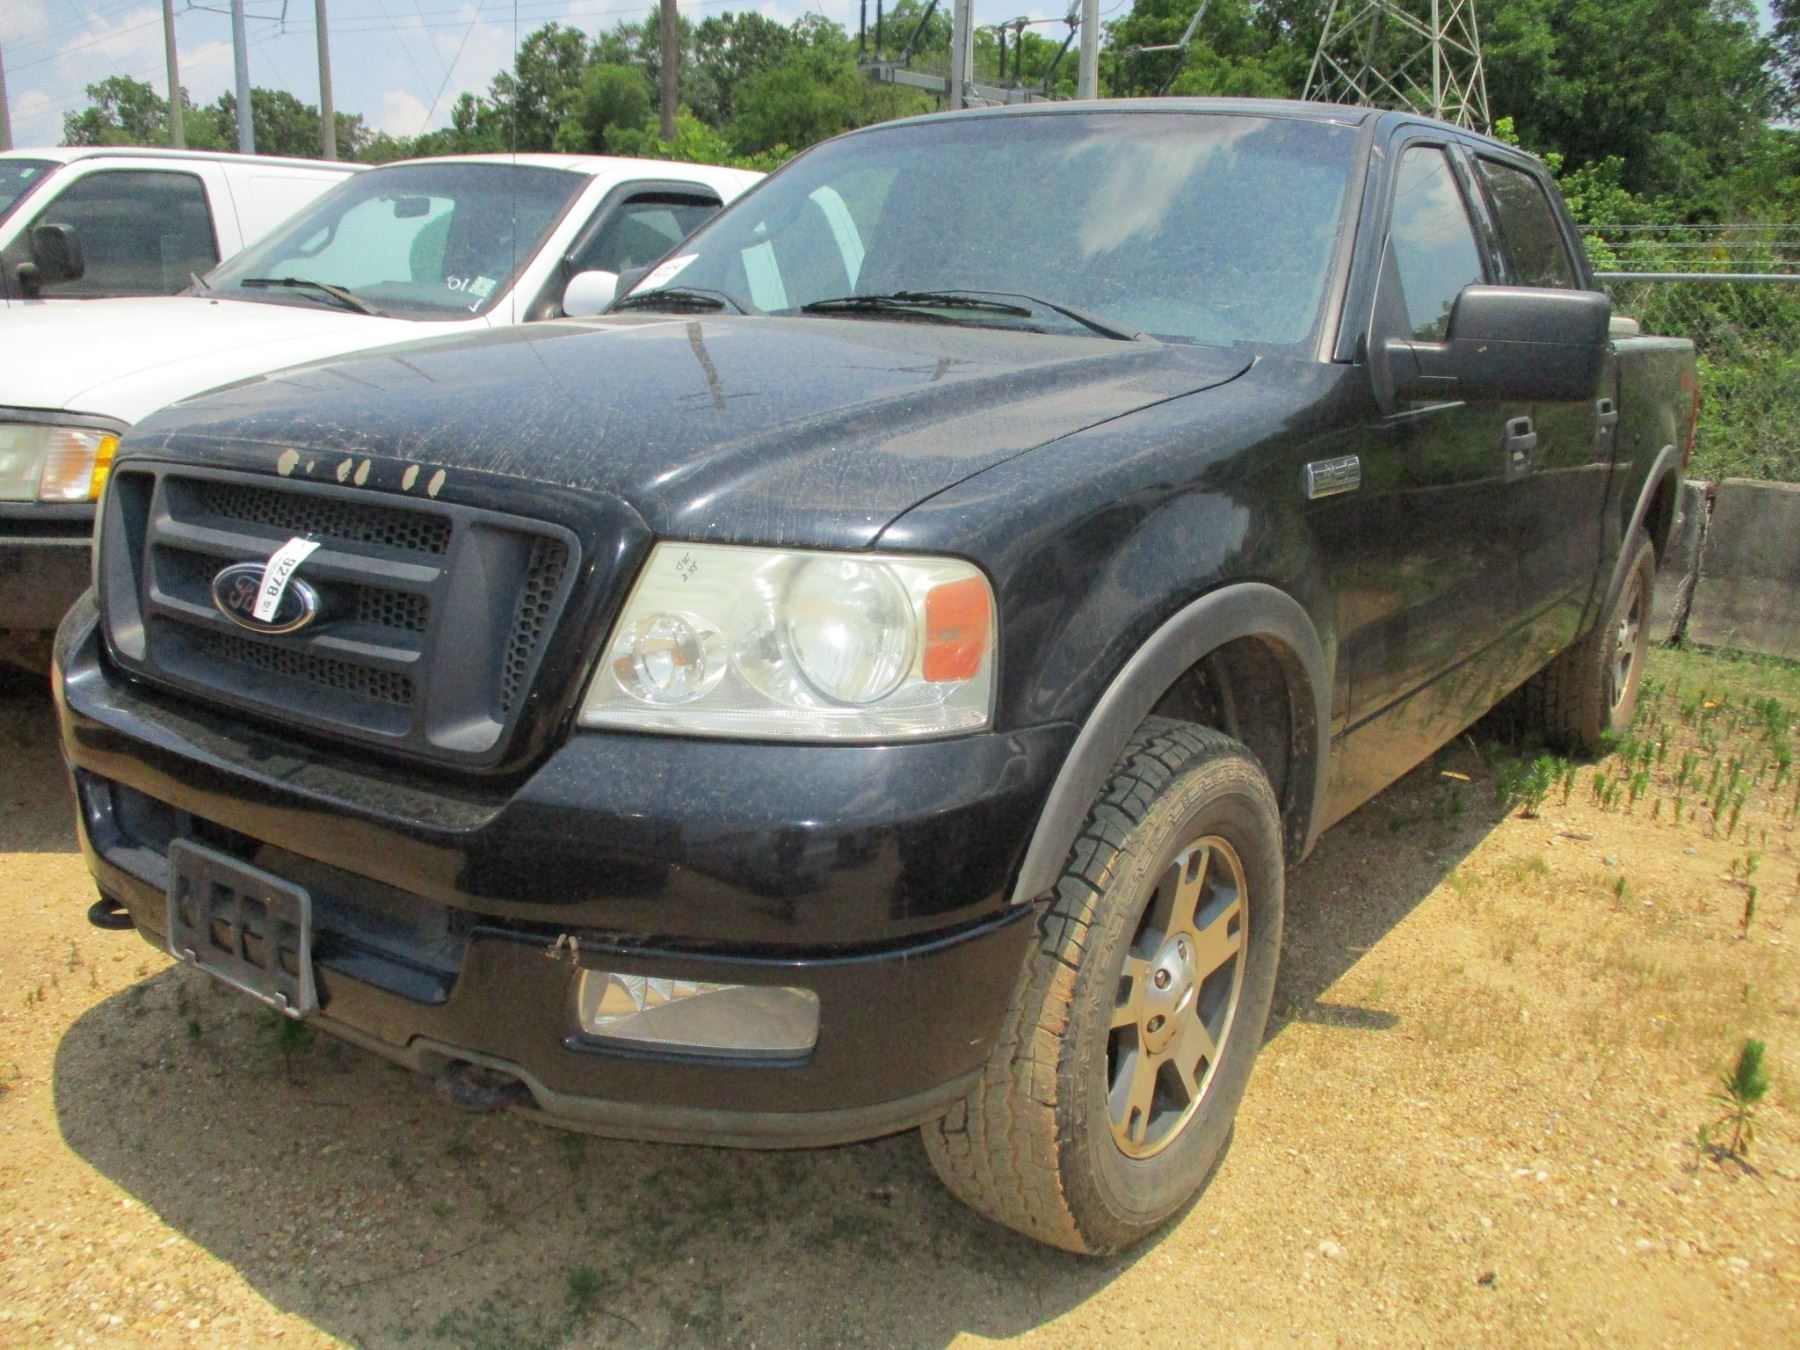 Image 1 2004 ford f150 fx4 pick up vin sn1ftpw14594kc30932